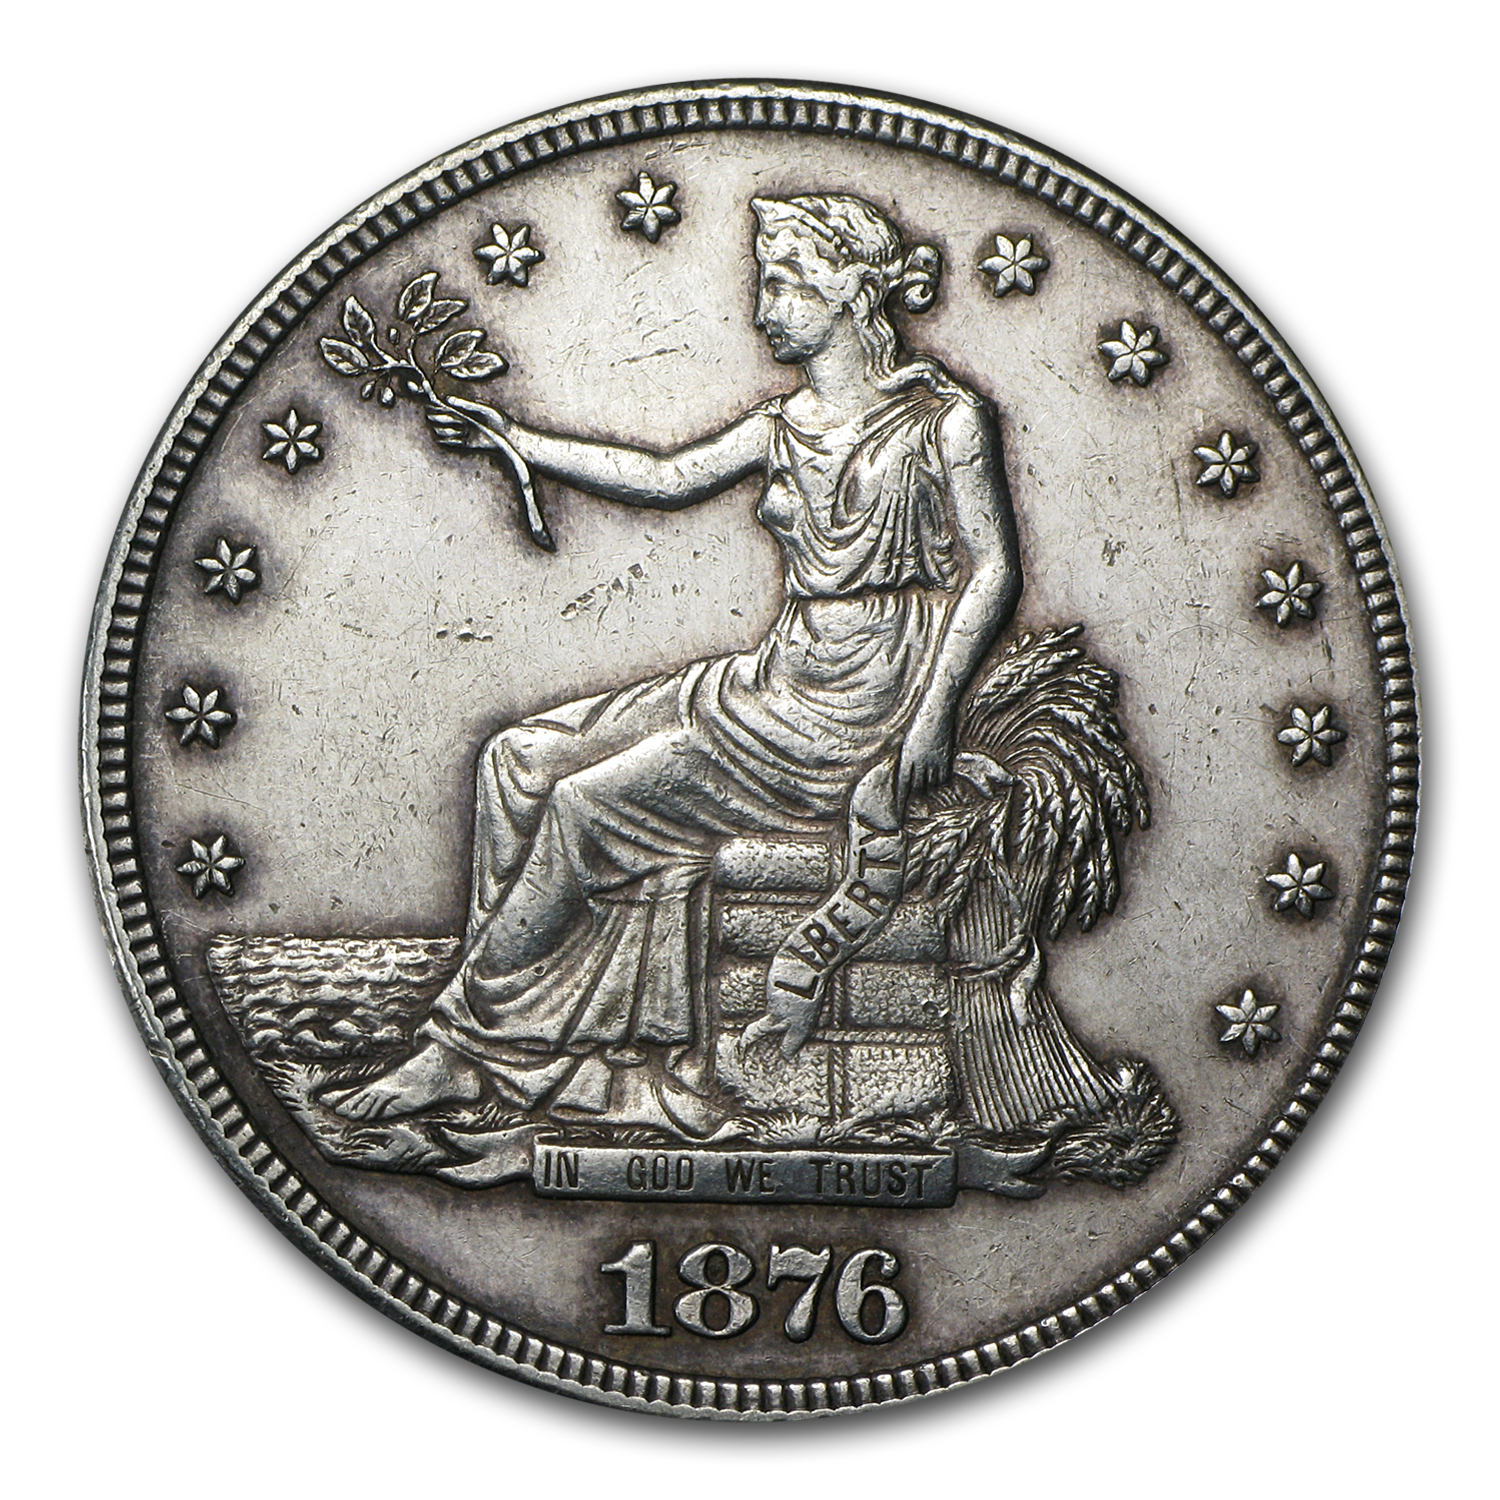 1876-S Trade Dollar - Almost Uncirculated